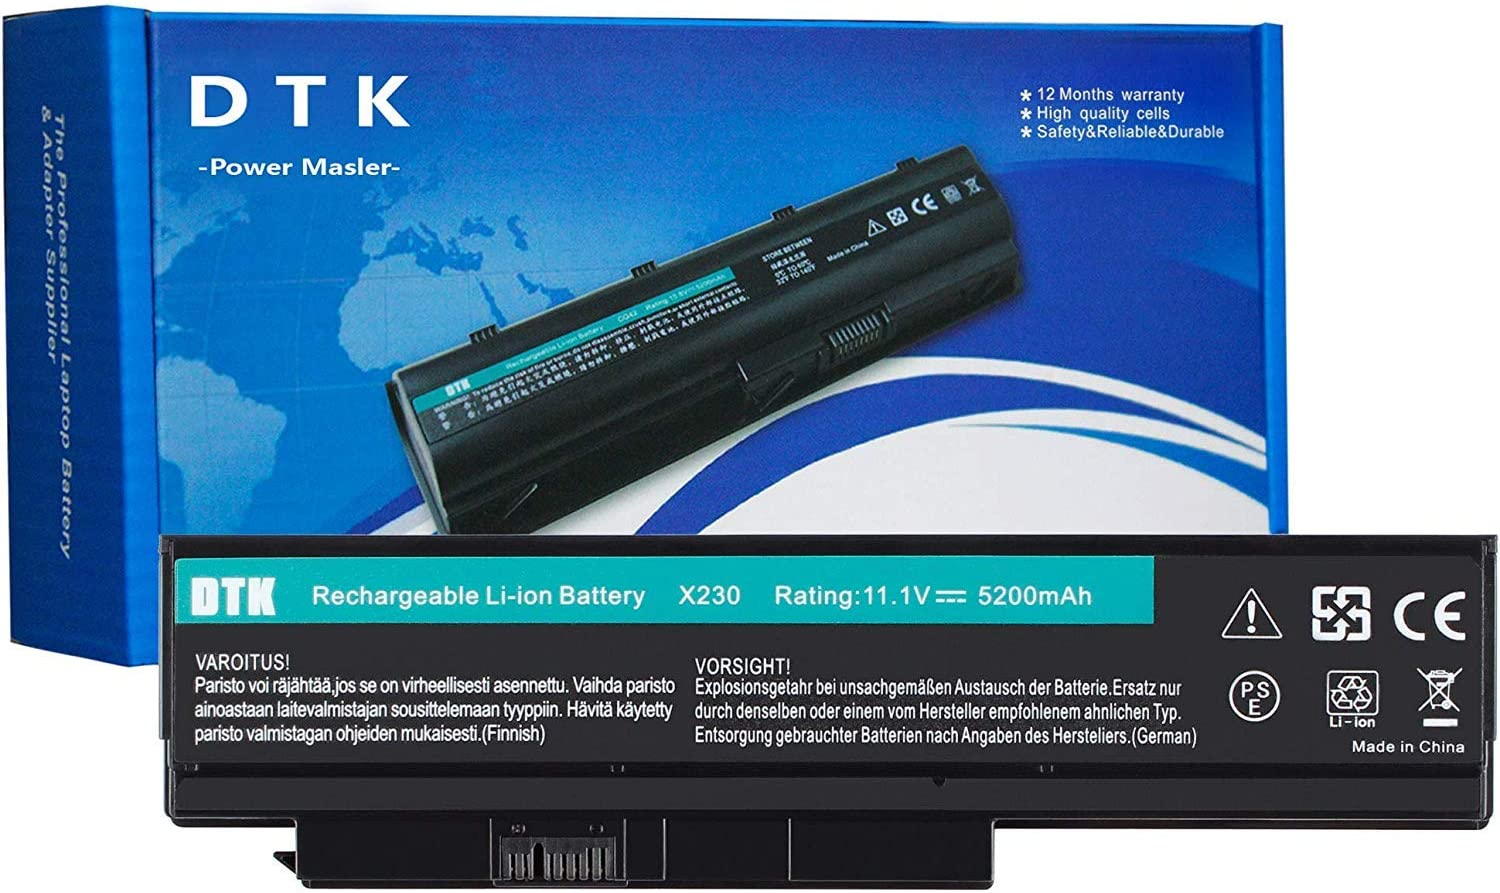 DTK Laptop Battery Replacement for Lenovo ThinkPad X230 X230i X220 X220i 0A36306 45N1023 45N1022 0A36307 45N1027 45N1026 44+ (6 Cell 11.1V 4400mAh) Laptop Li-ion Batteries